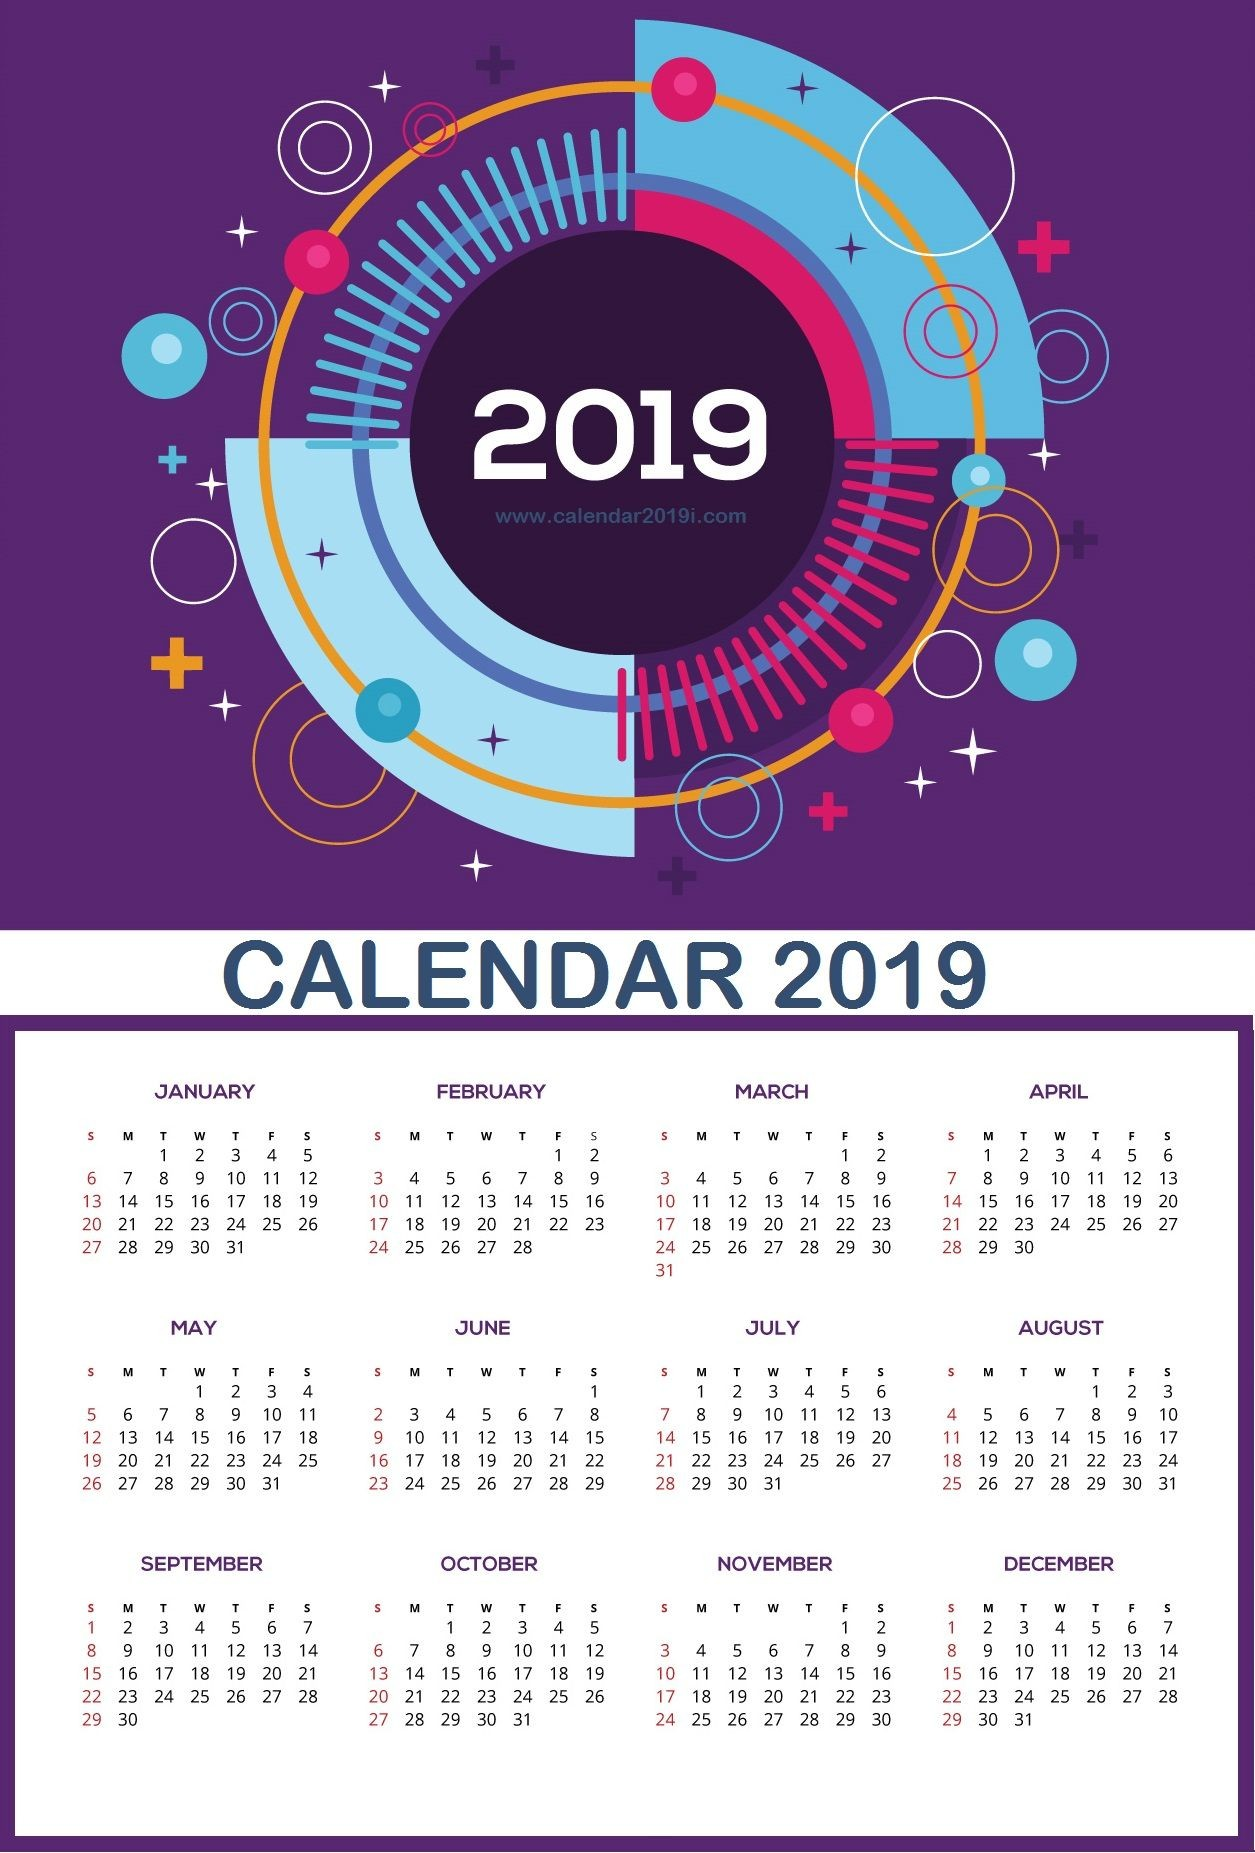 Calendario Tumblr Imprimir Más Reciente Wall Calendar 2019 Planner Pinterest Of Calendario Tumblr Imprimir Más Actual Новости Agenda Pinterest